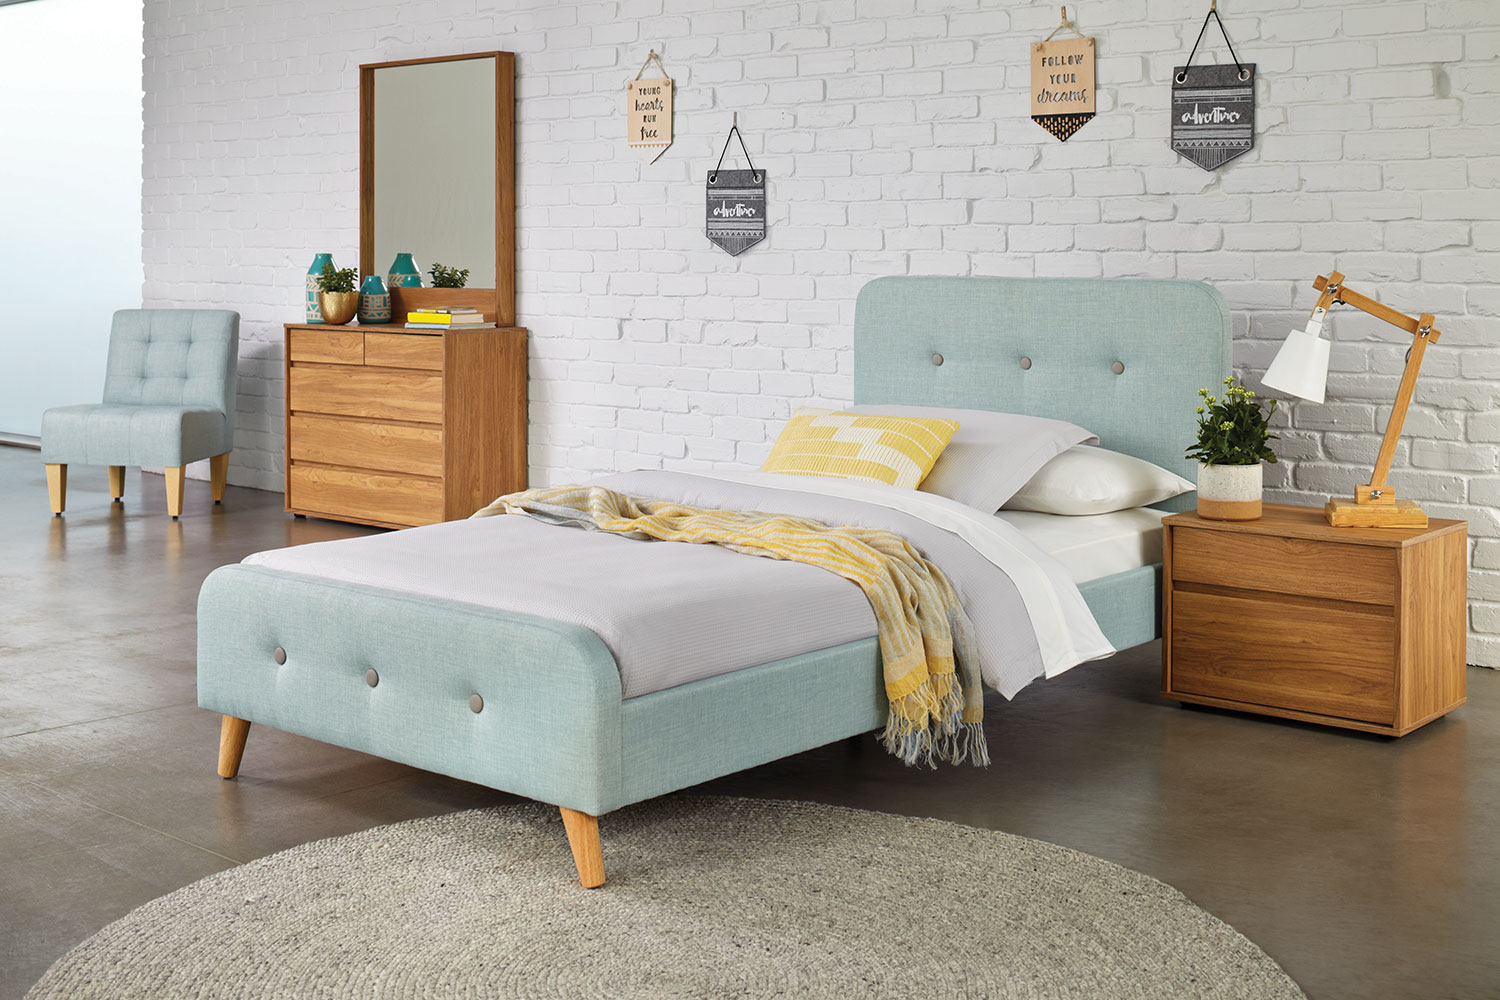 King Single Bed With Drawers Calypso King Single Bed Frame By Nero Furniture